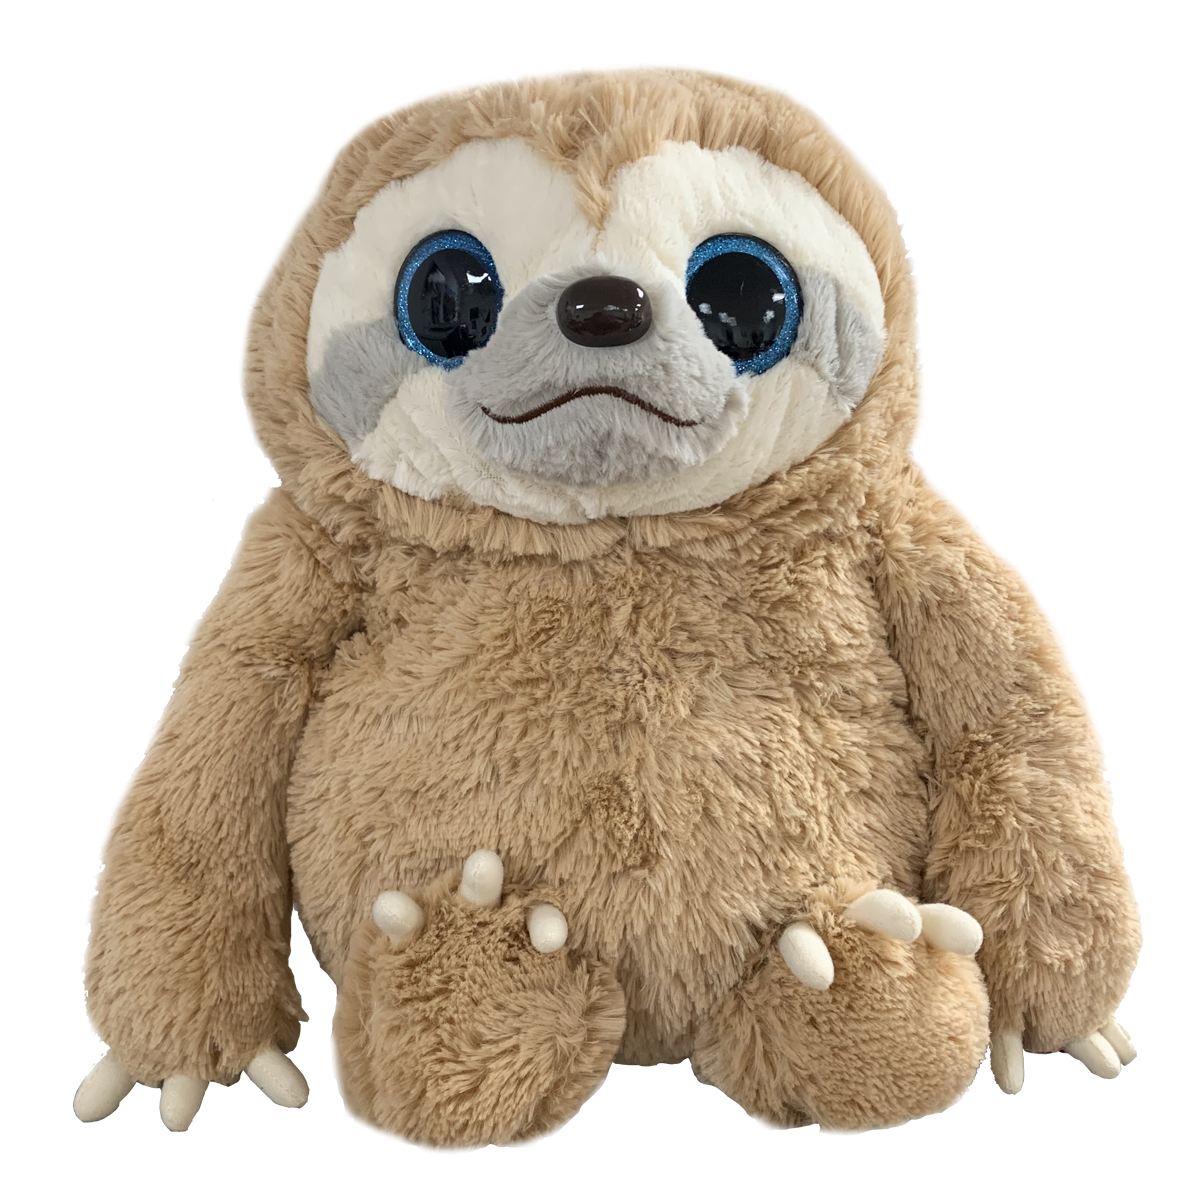 Momoko, Namakemono No Mike, Sloth Plush, Brown, Amuse BIG Size, 17 Inches